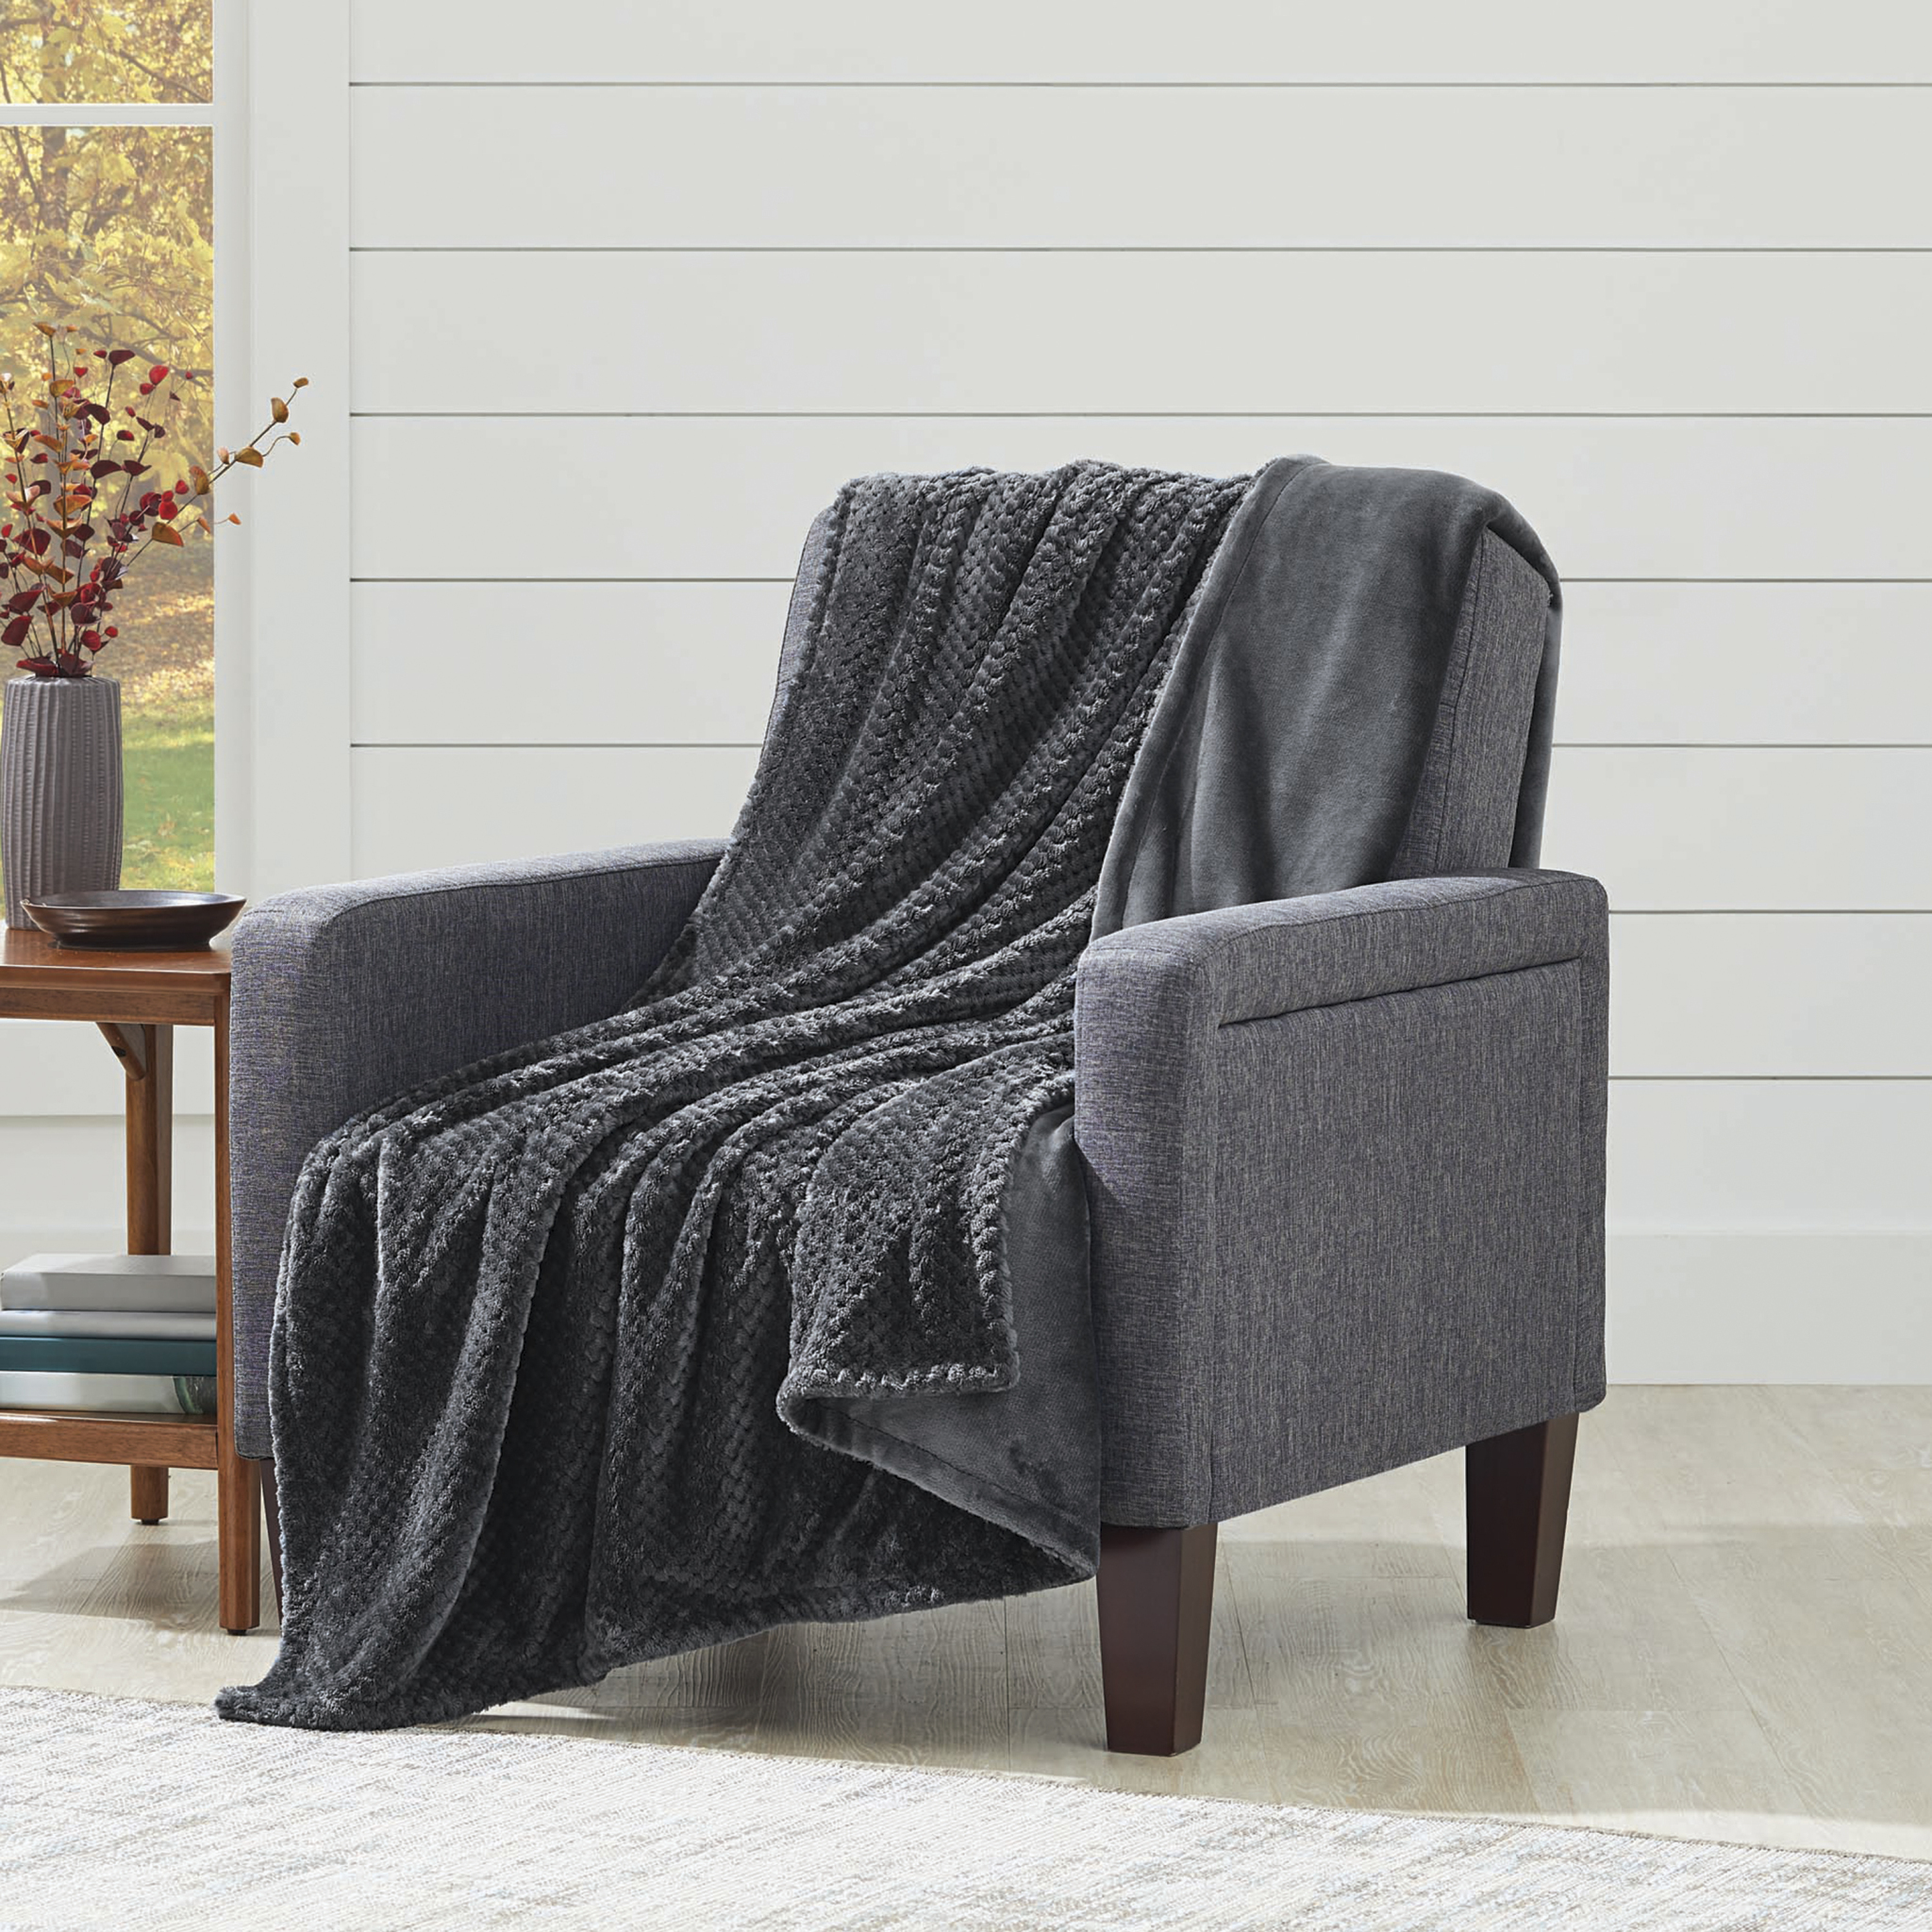 Better Homes and Gardens Oversize Reversible Velvet Plush Throw Blanket